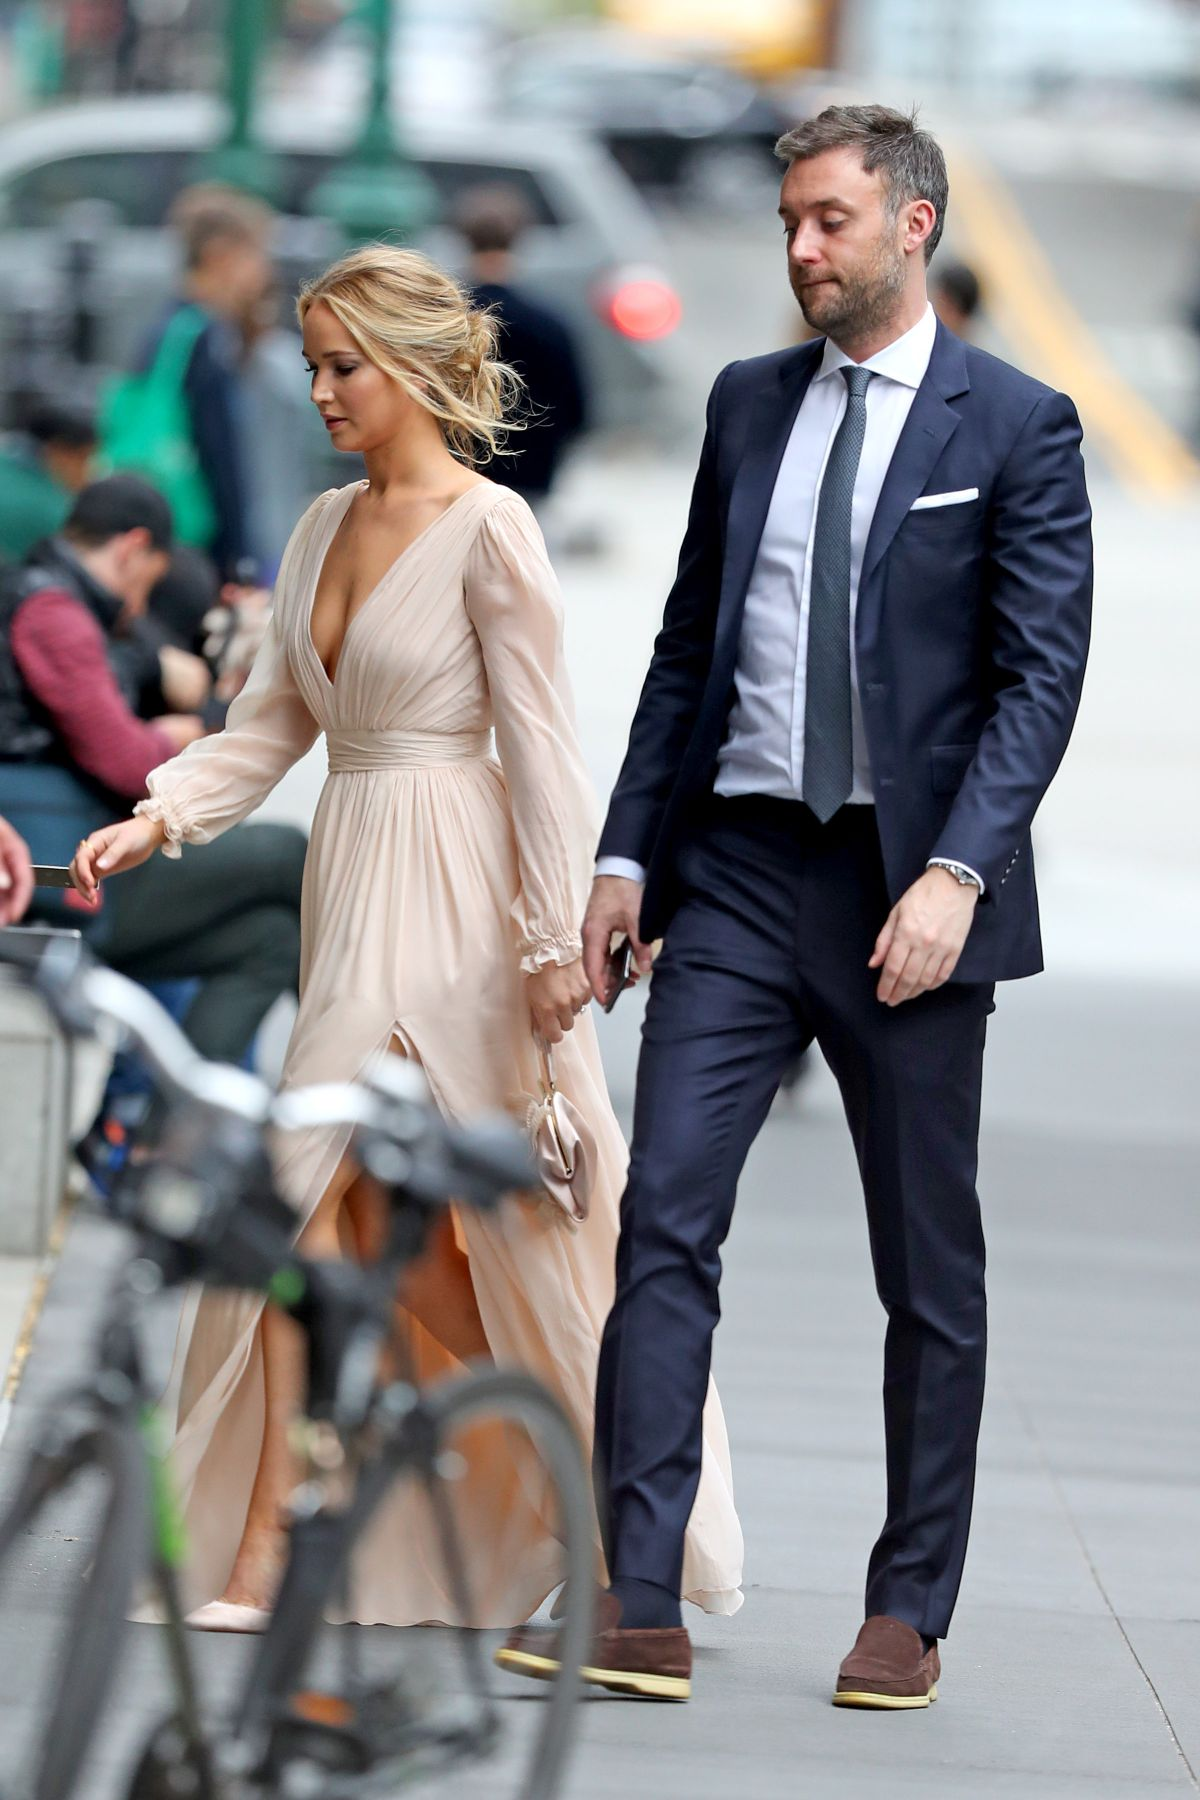 Jennifer Lawrence marries Cooke Maroney at star-studded